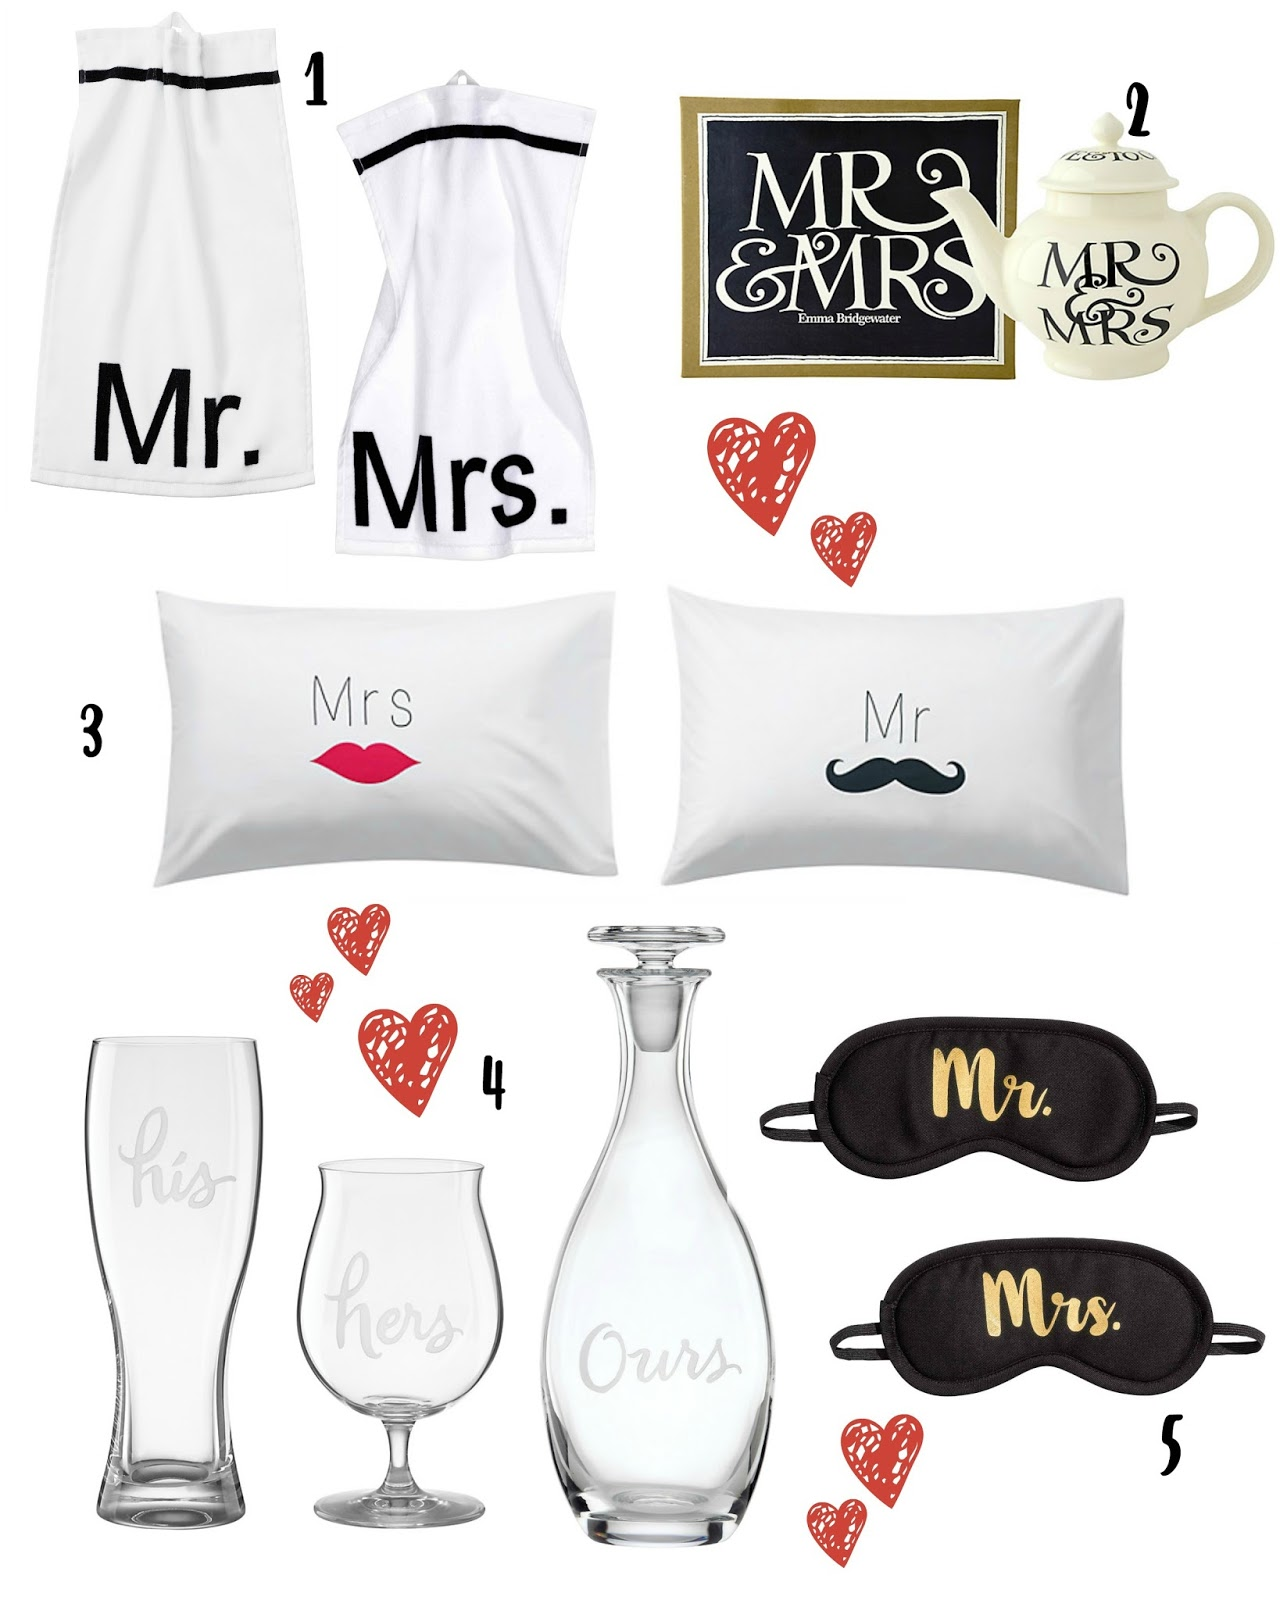 Wedding Gifts Mr And Mrs: 14 Last-minute Modern Wedding Gift Ideas For Mr. & Mrs